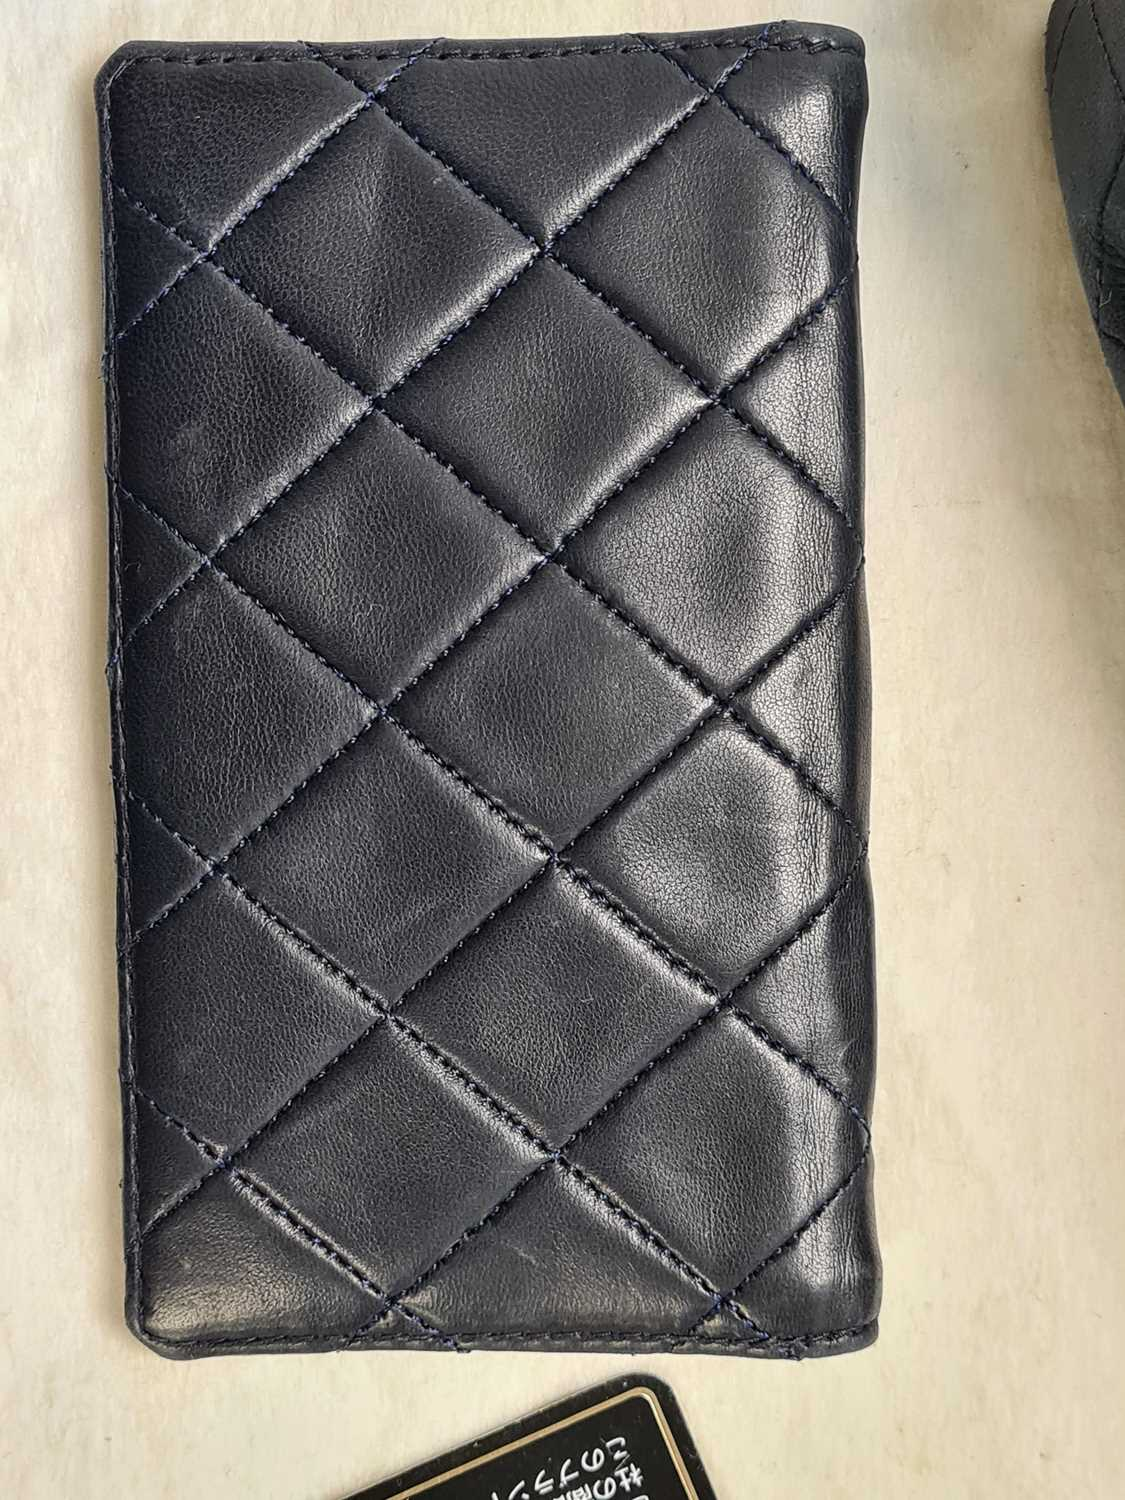 Chanel. A classic quilted leather handbag, of tapered square design, with gold tone CC logo clasp, - Image 20 of 26